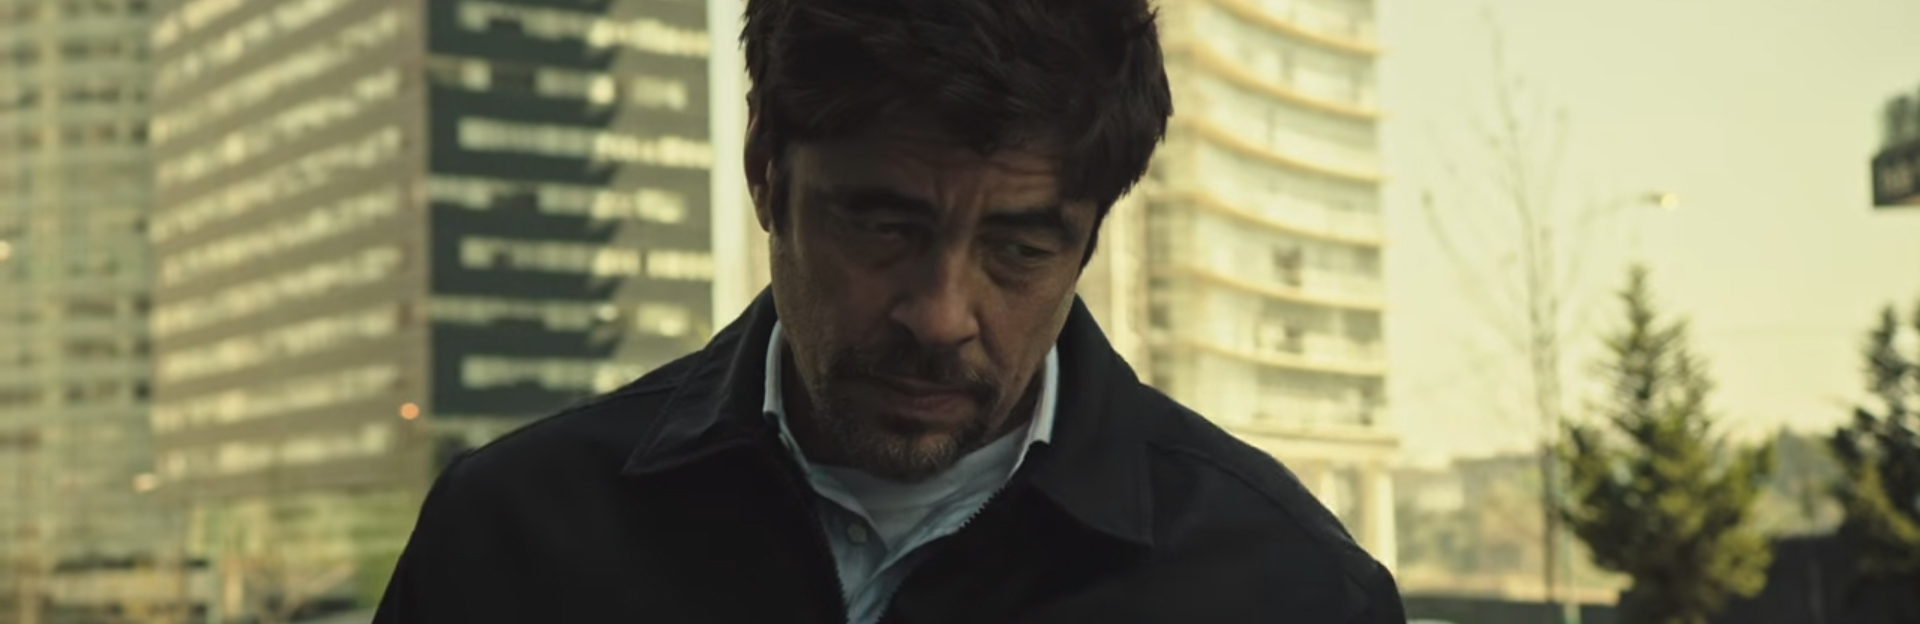 Sicario Day of the Soldado. Image Credit: Lionsgate/Sony